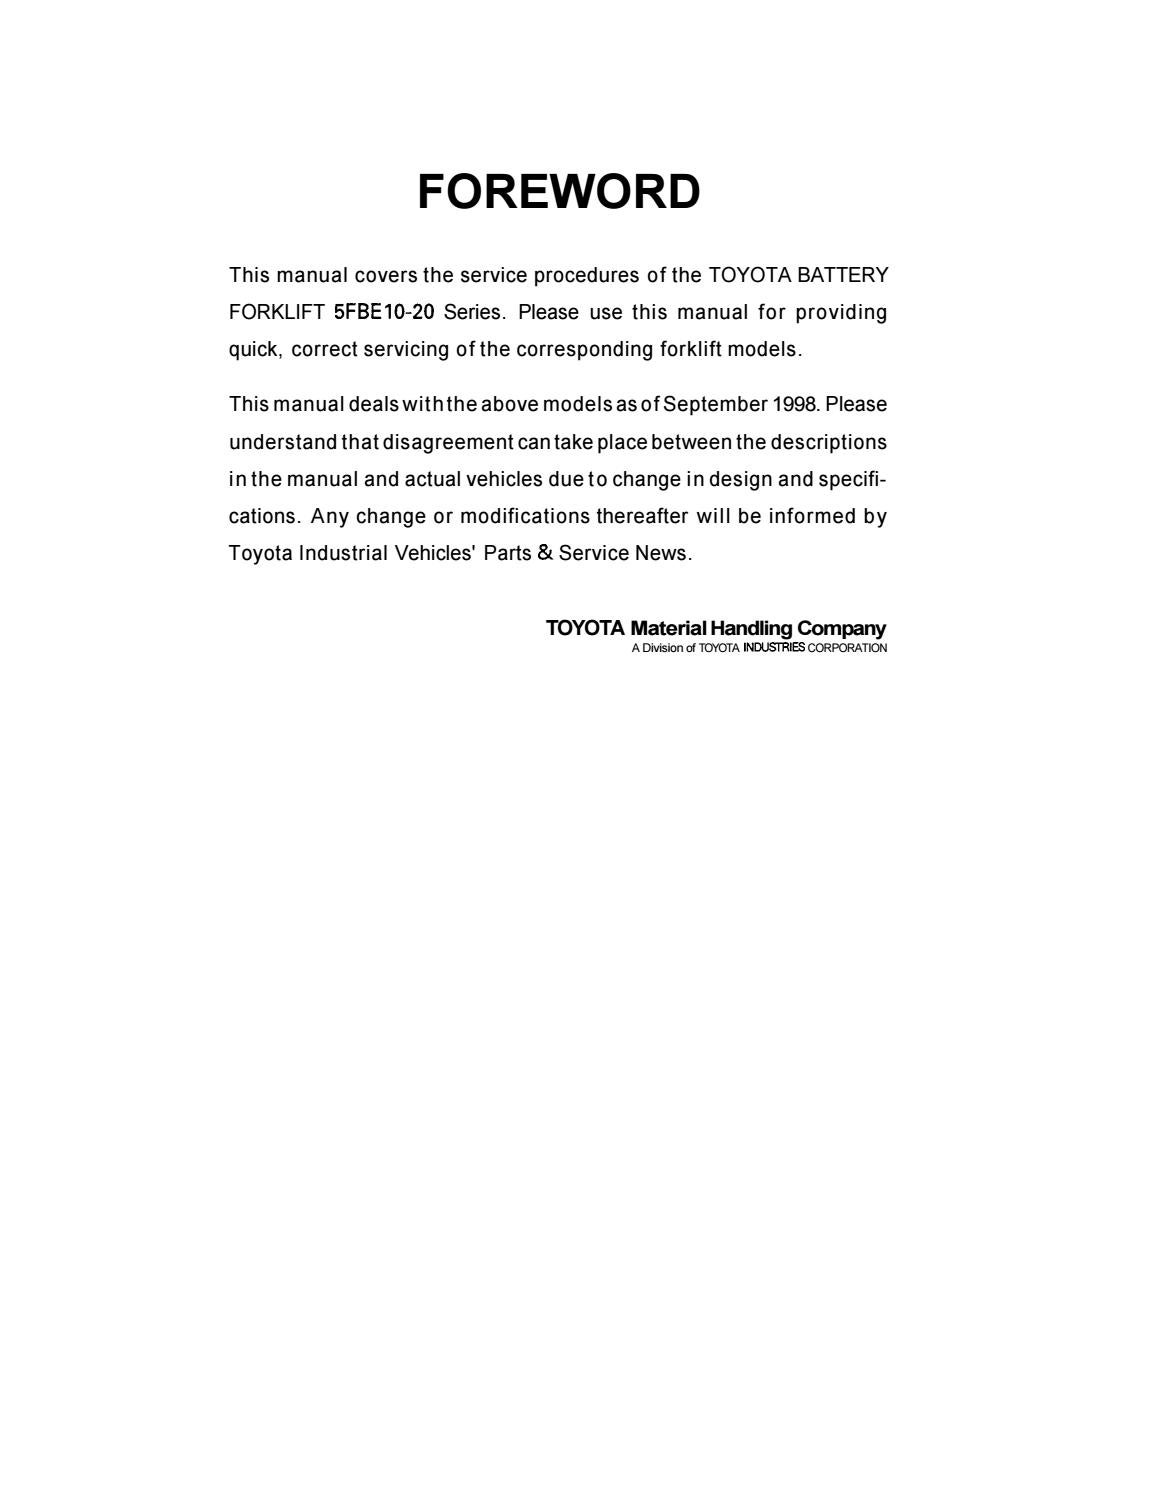 Toyota 5FBE18 Forklift Service Repair Manual by 163610 - issuu